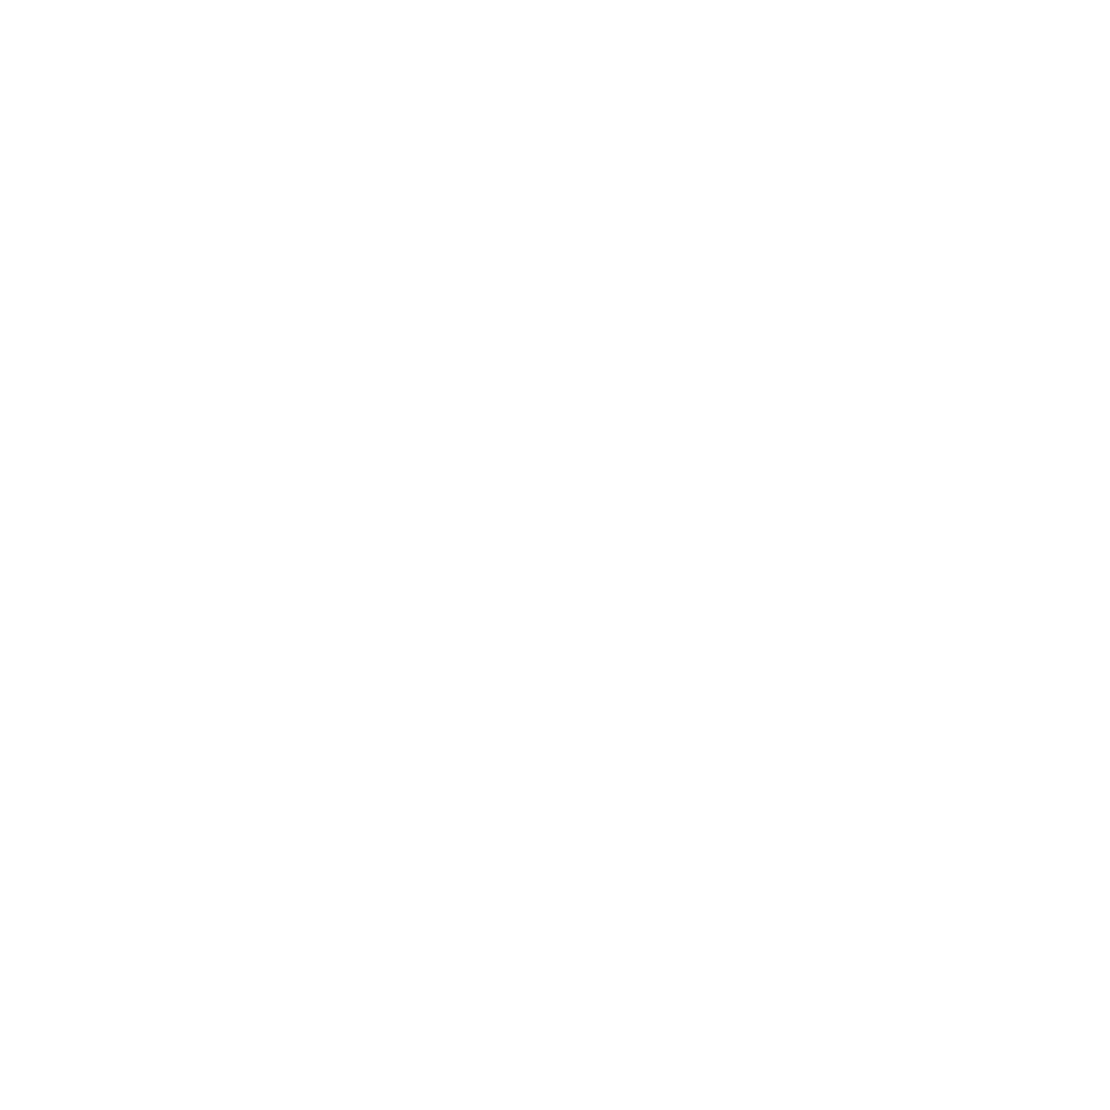 Chipstead Flower Show is affiliated with the RHS